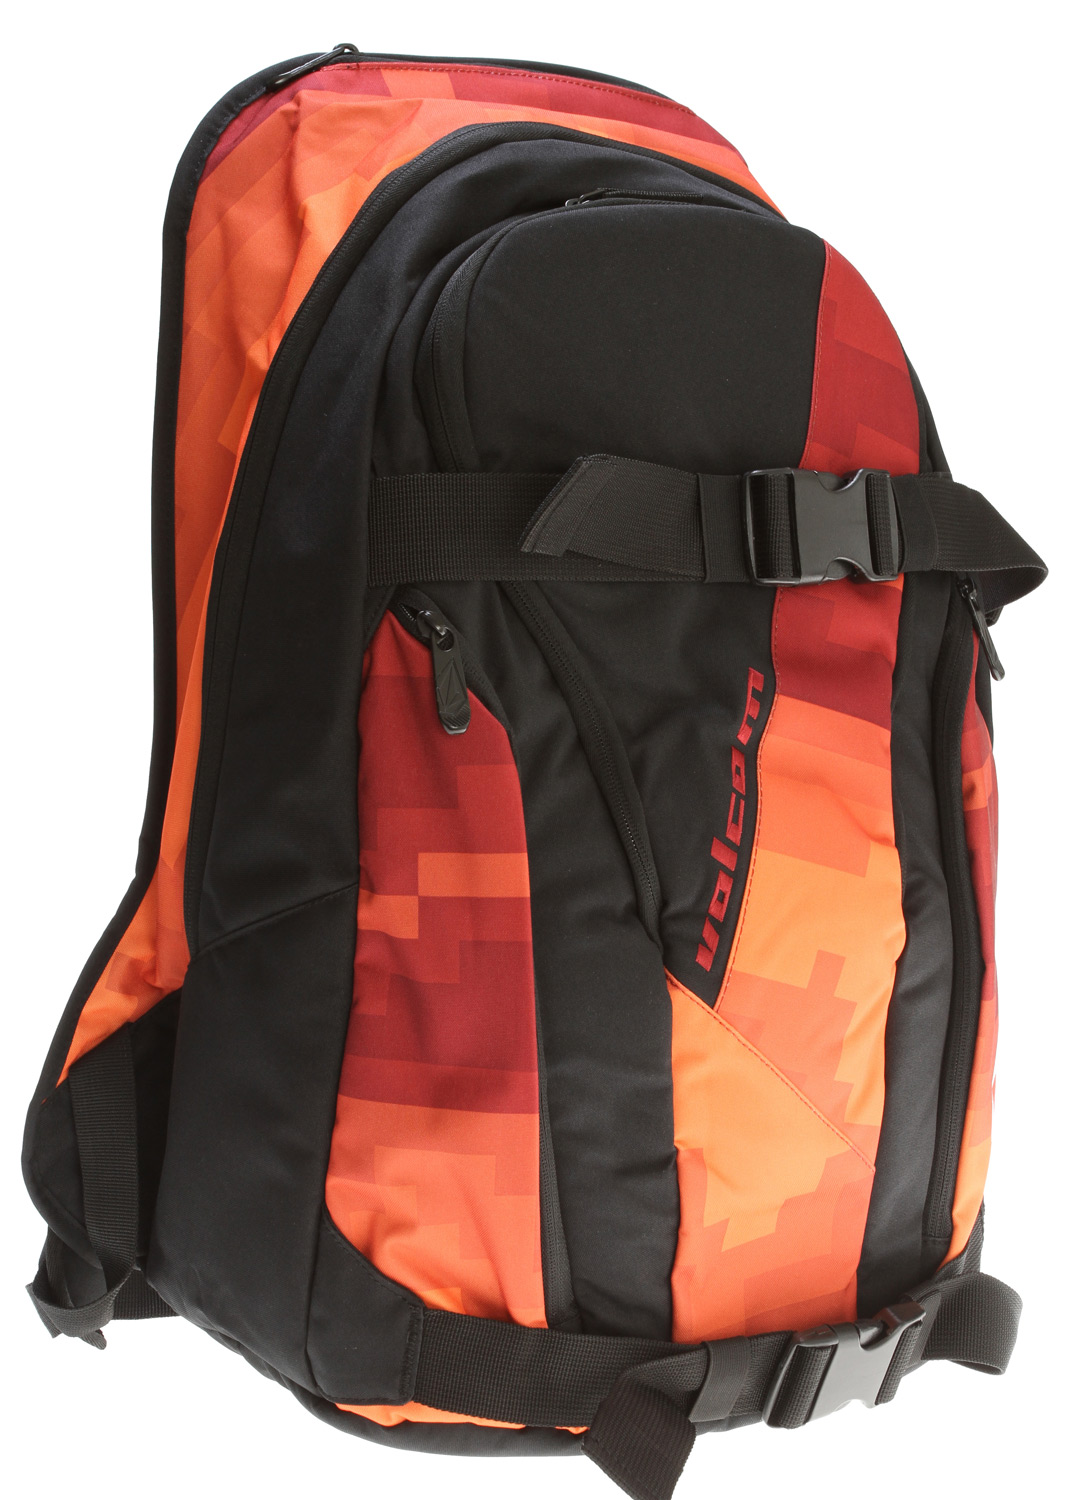 "Surf Keep on keeping on with the backpack that will never steer you wrong. Consider the Crustaceous surf pack your home away from home, with four main zipper compartments, a heat sealed wet/dry compartment, and a tarpaulin lined wax pocket. 300D polyester. Measures 20""H x 13""W x 6.5""D. - $44.95"